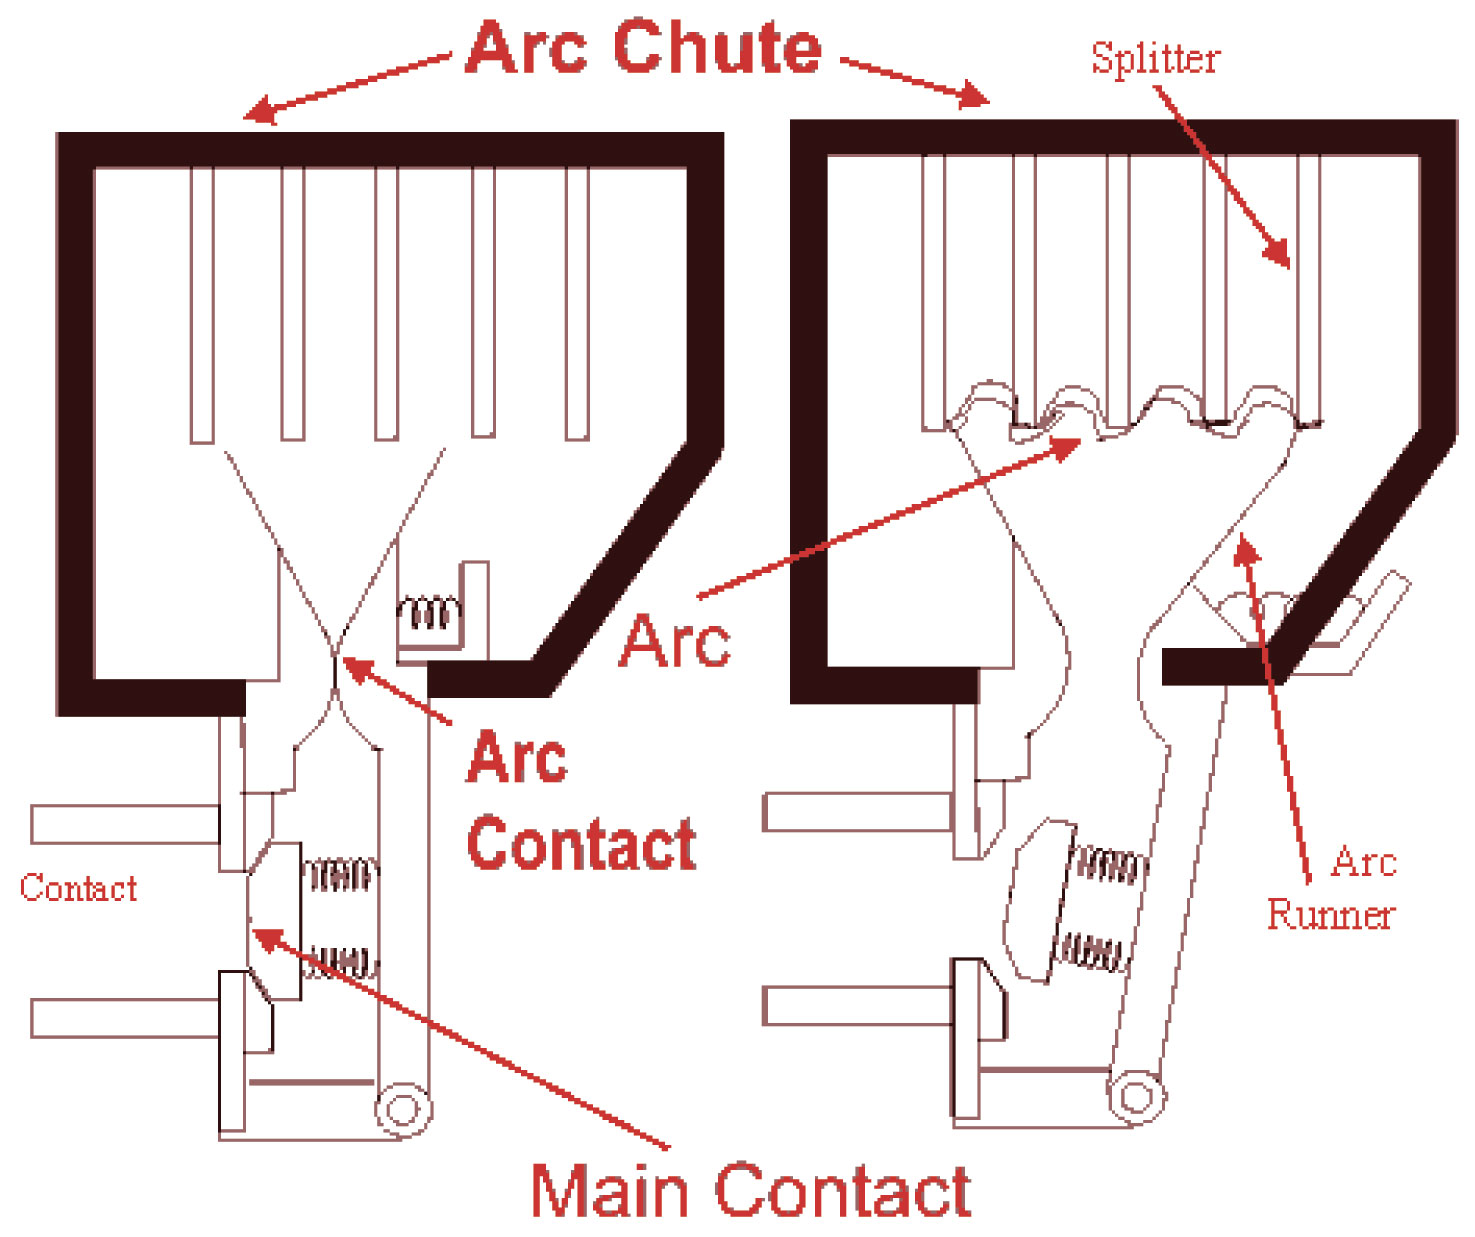 Air Circuit Breaker Wiring Diagram 34 Images Dc Schematic Of The Function A